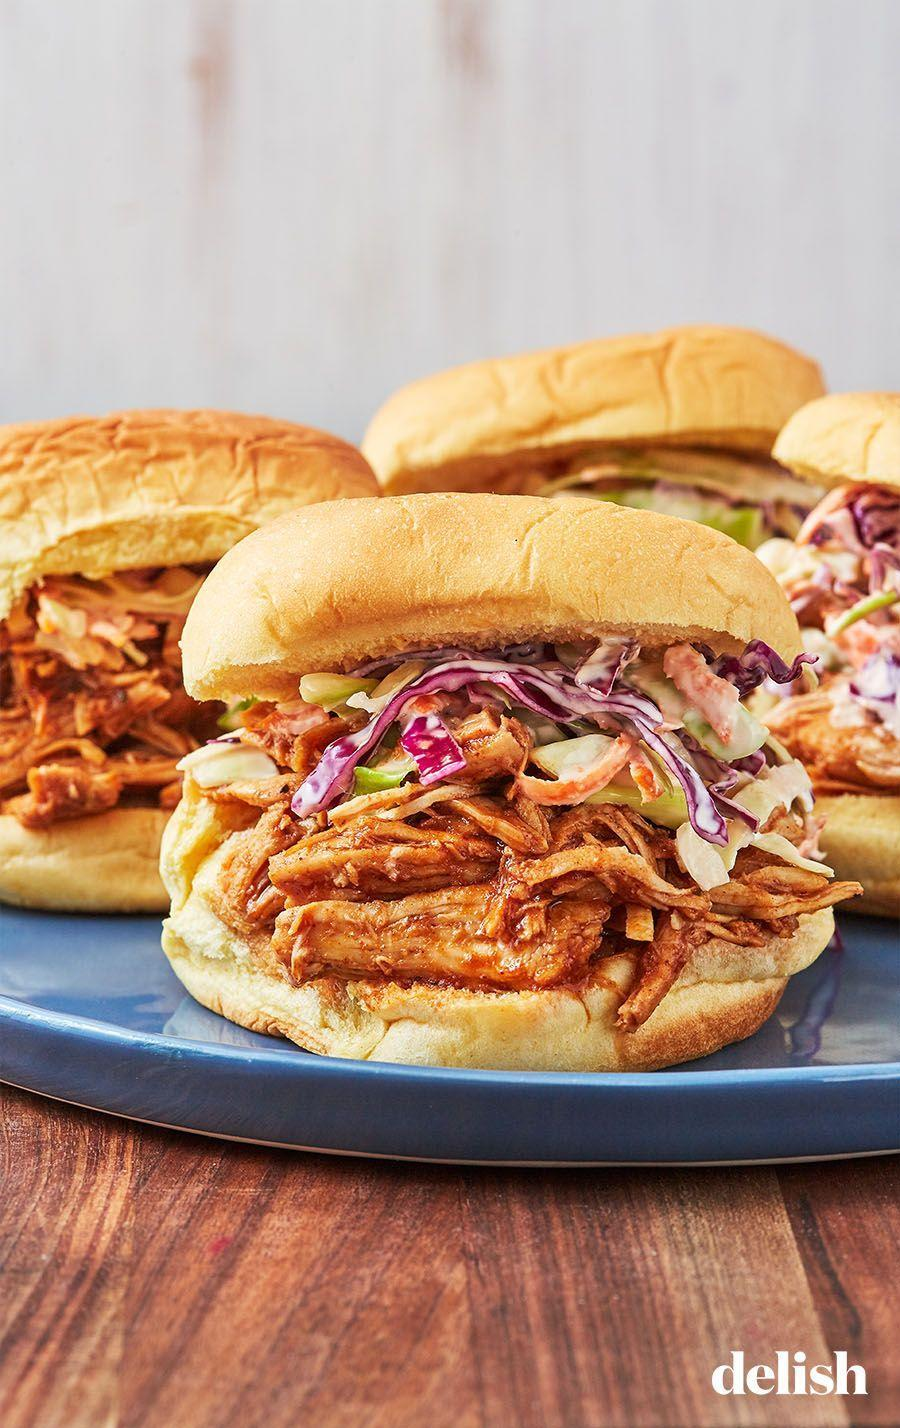 """<p>These are INCREDIBLE.</p><p>Get the recipe from <a href=""""https://www.delish.com/cooking/recipe-ideas/recipes/a47545/brown-sugar-bbq-chicken-recipe/"""" rel=""""nofollow noopener"""" target=""""_blank"""" data-ylk=""""slk:Delish"""" class=""""link rapid-noclick-resp"""">Delish</a>.</p>"""